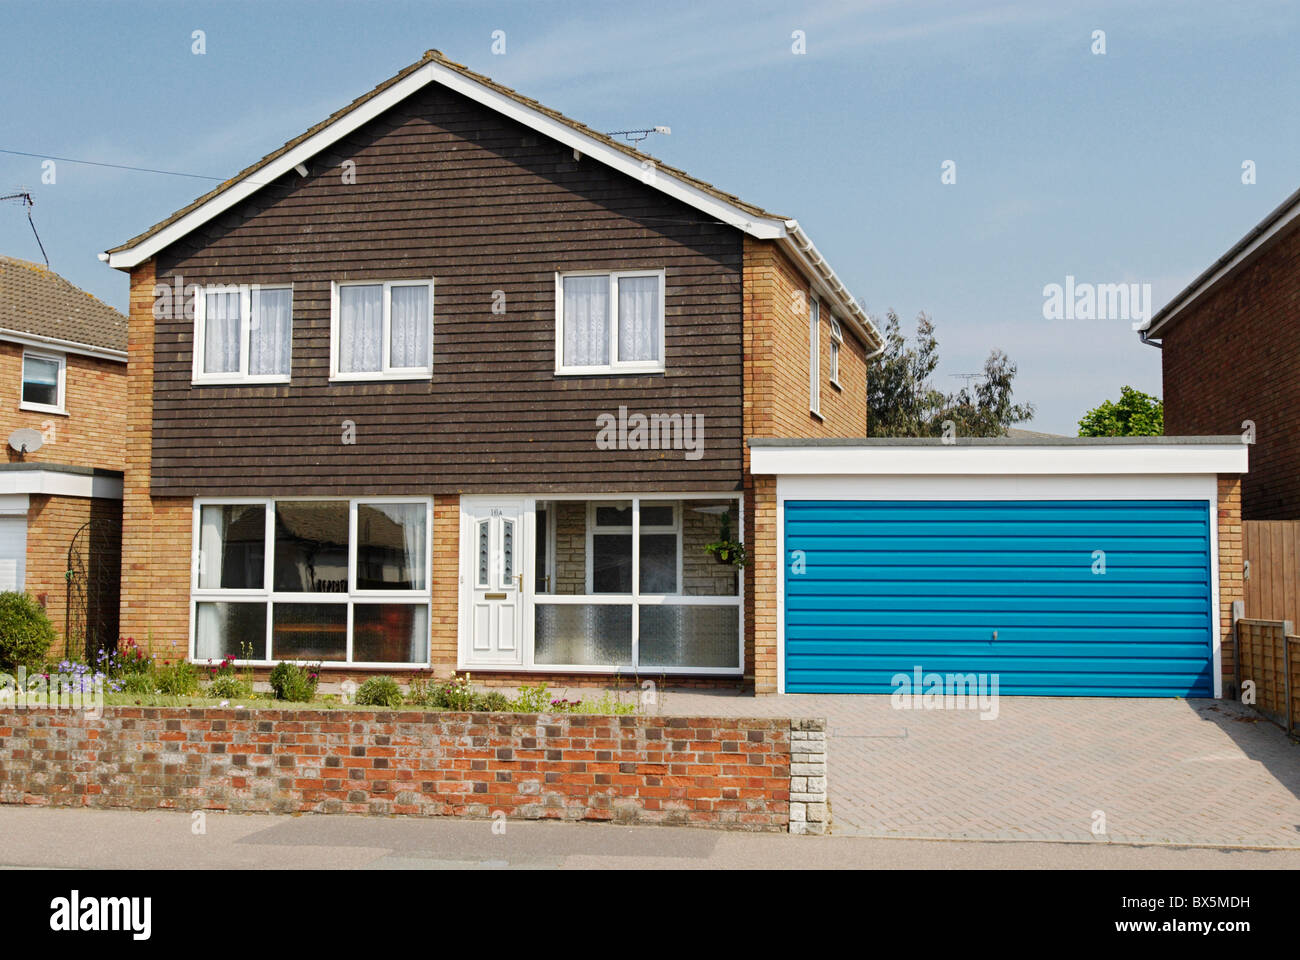 1970s house exterior stock photos 1970s house exterior stock rh alamy com 1970s houses for sale 1970s house what to look for